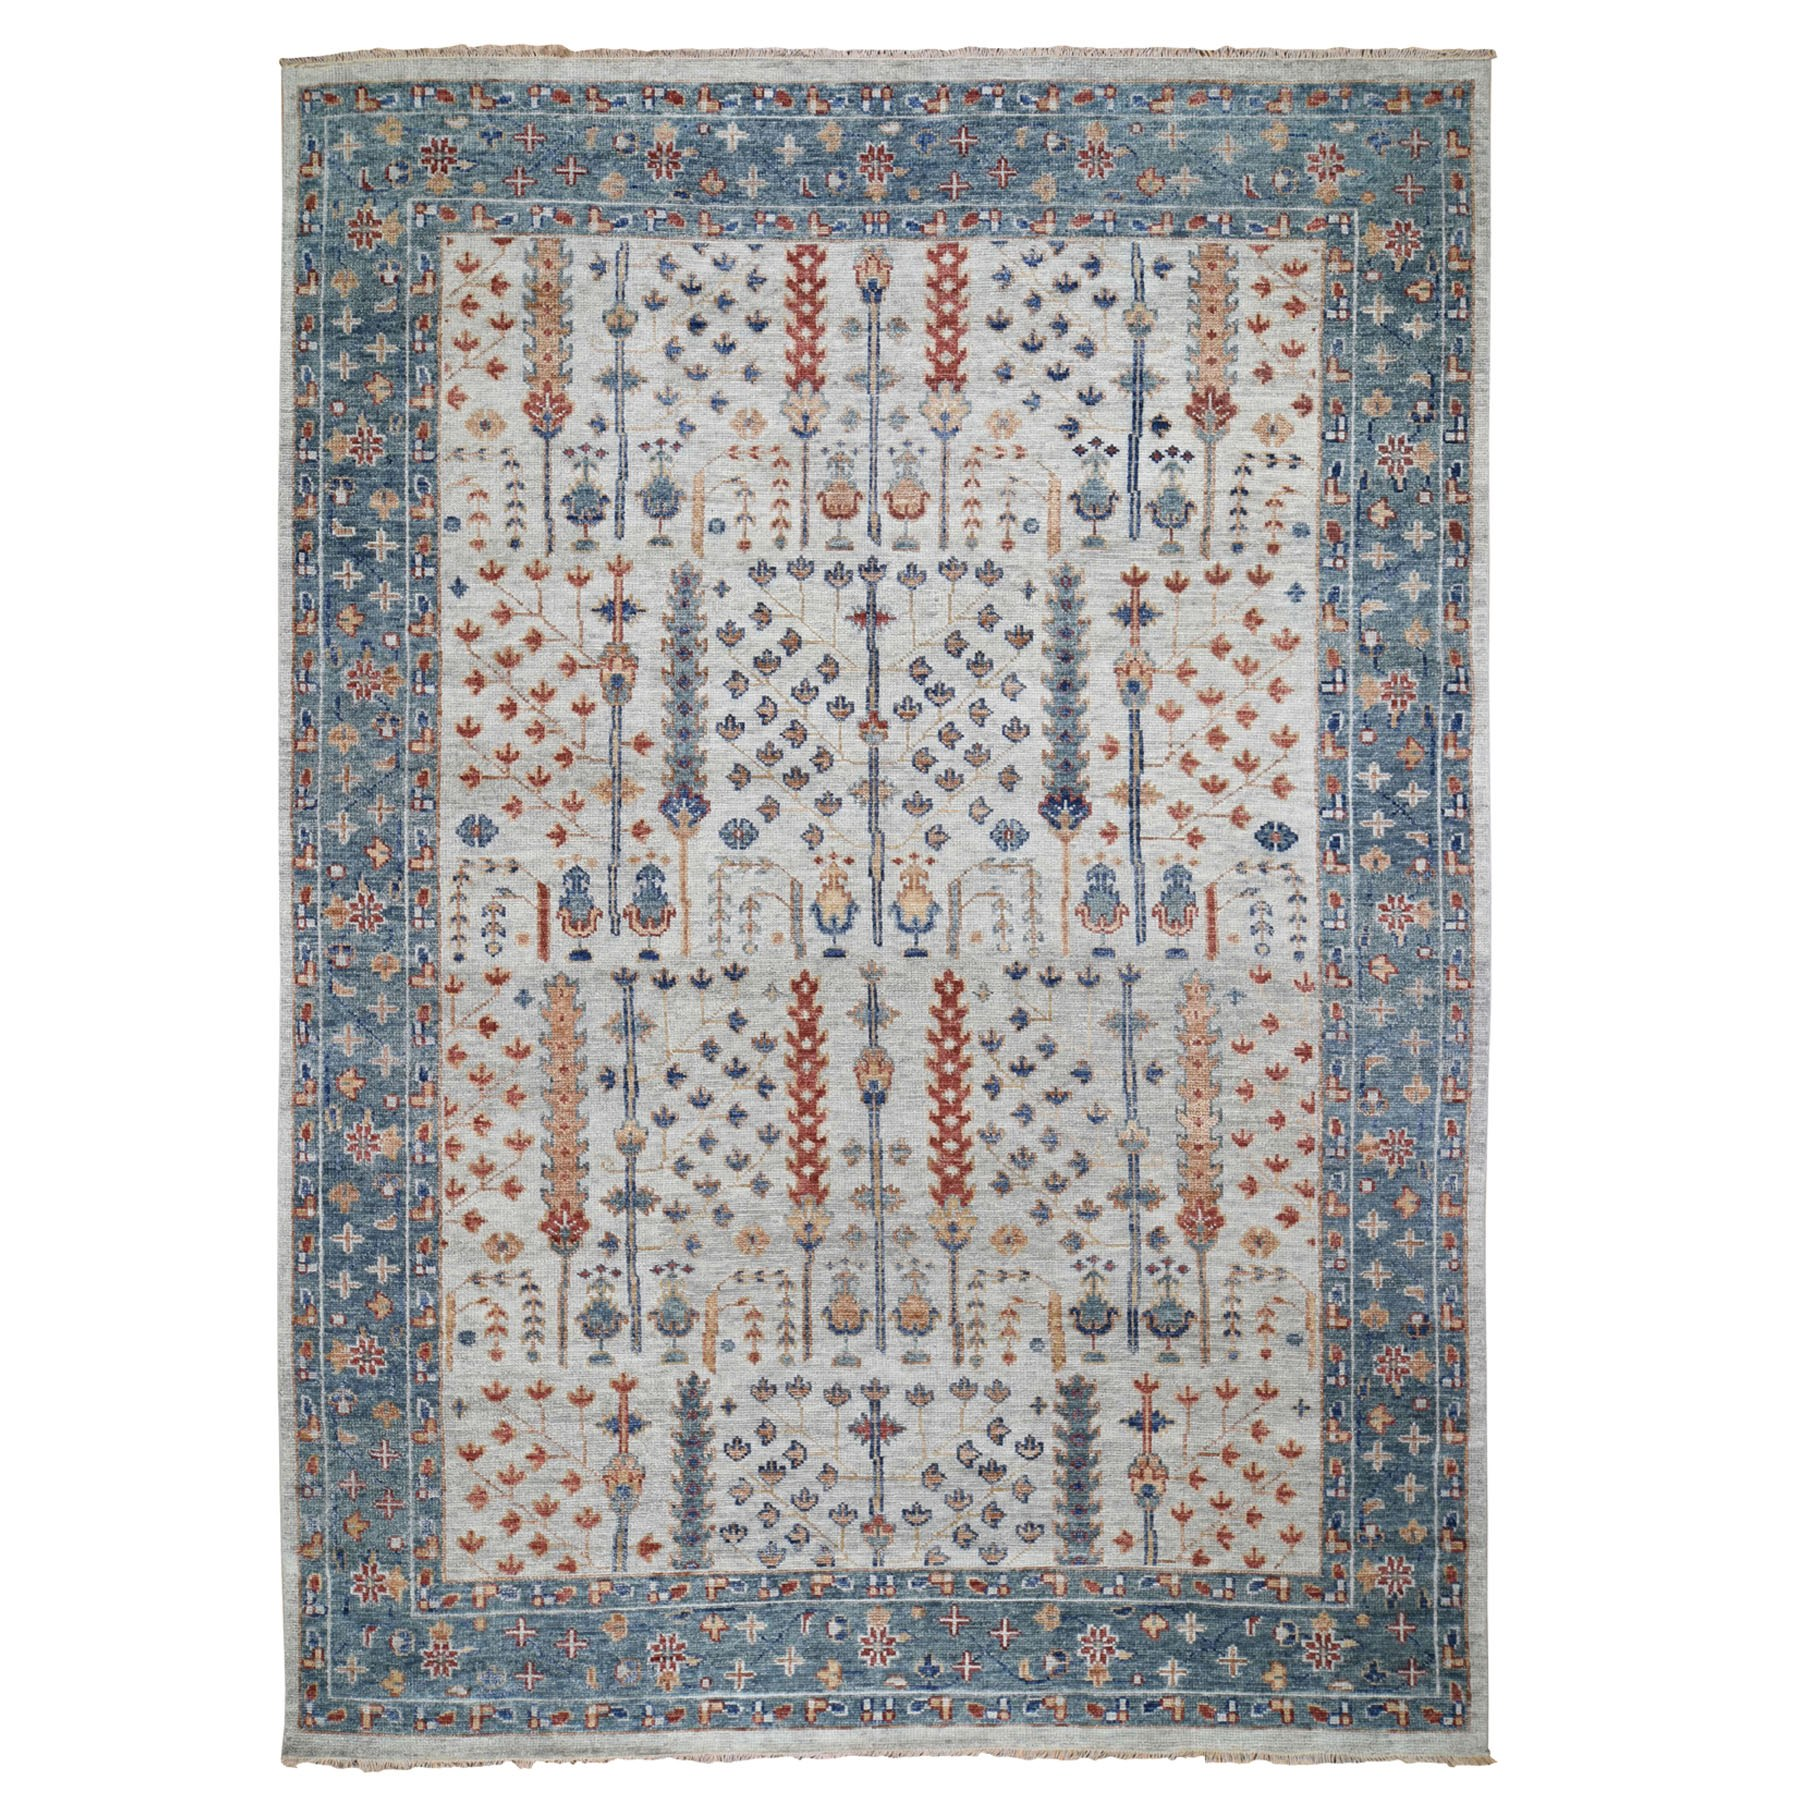 "10'X13'10"" Supple Collection With Tree Design Soft Wool Hand Knotted Oriental Rug moad8ba9"